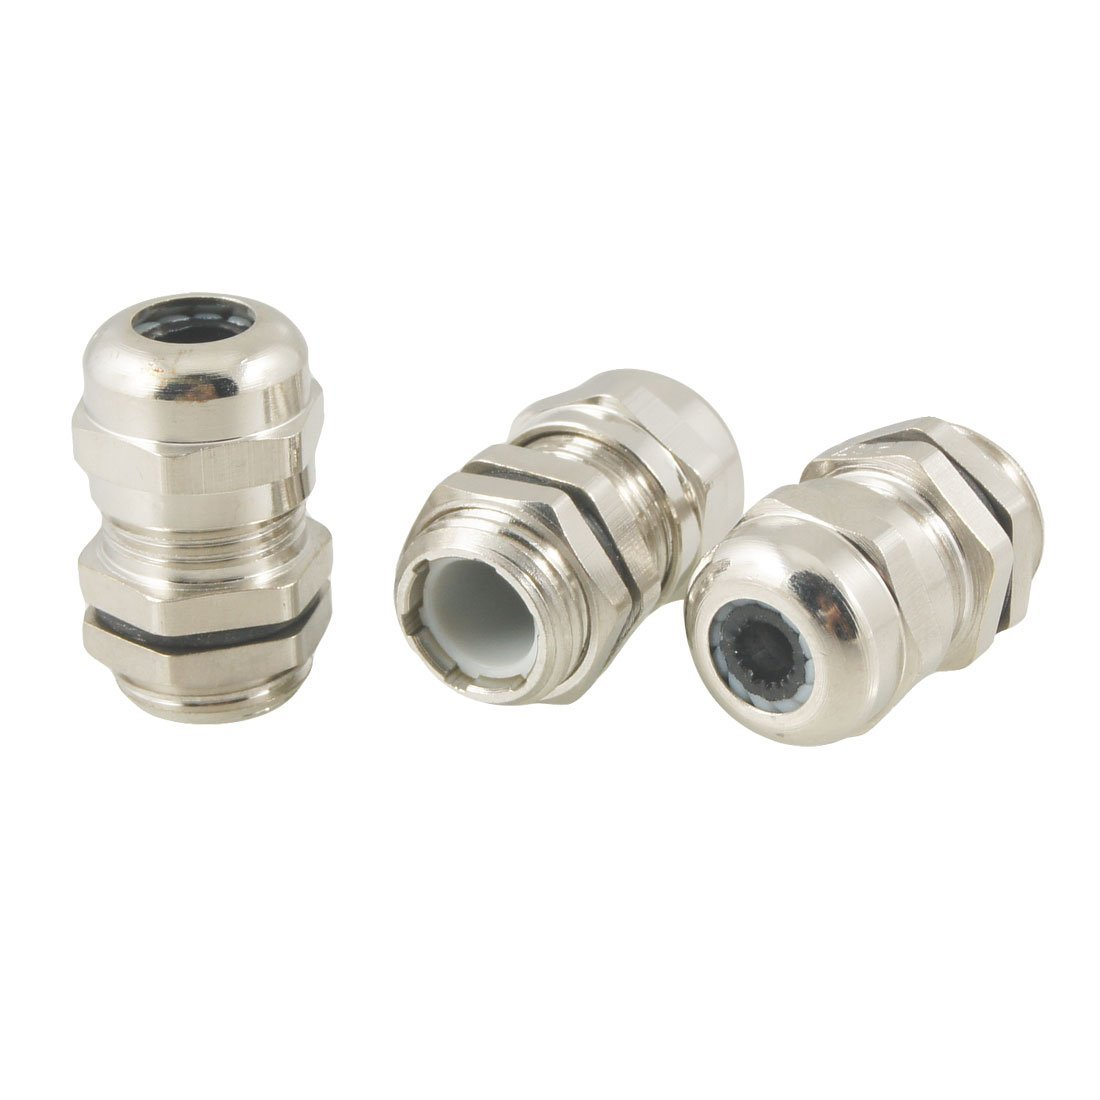 pcs Stainless